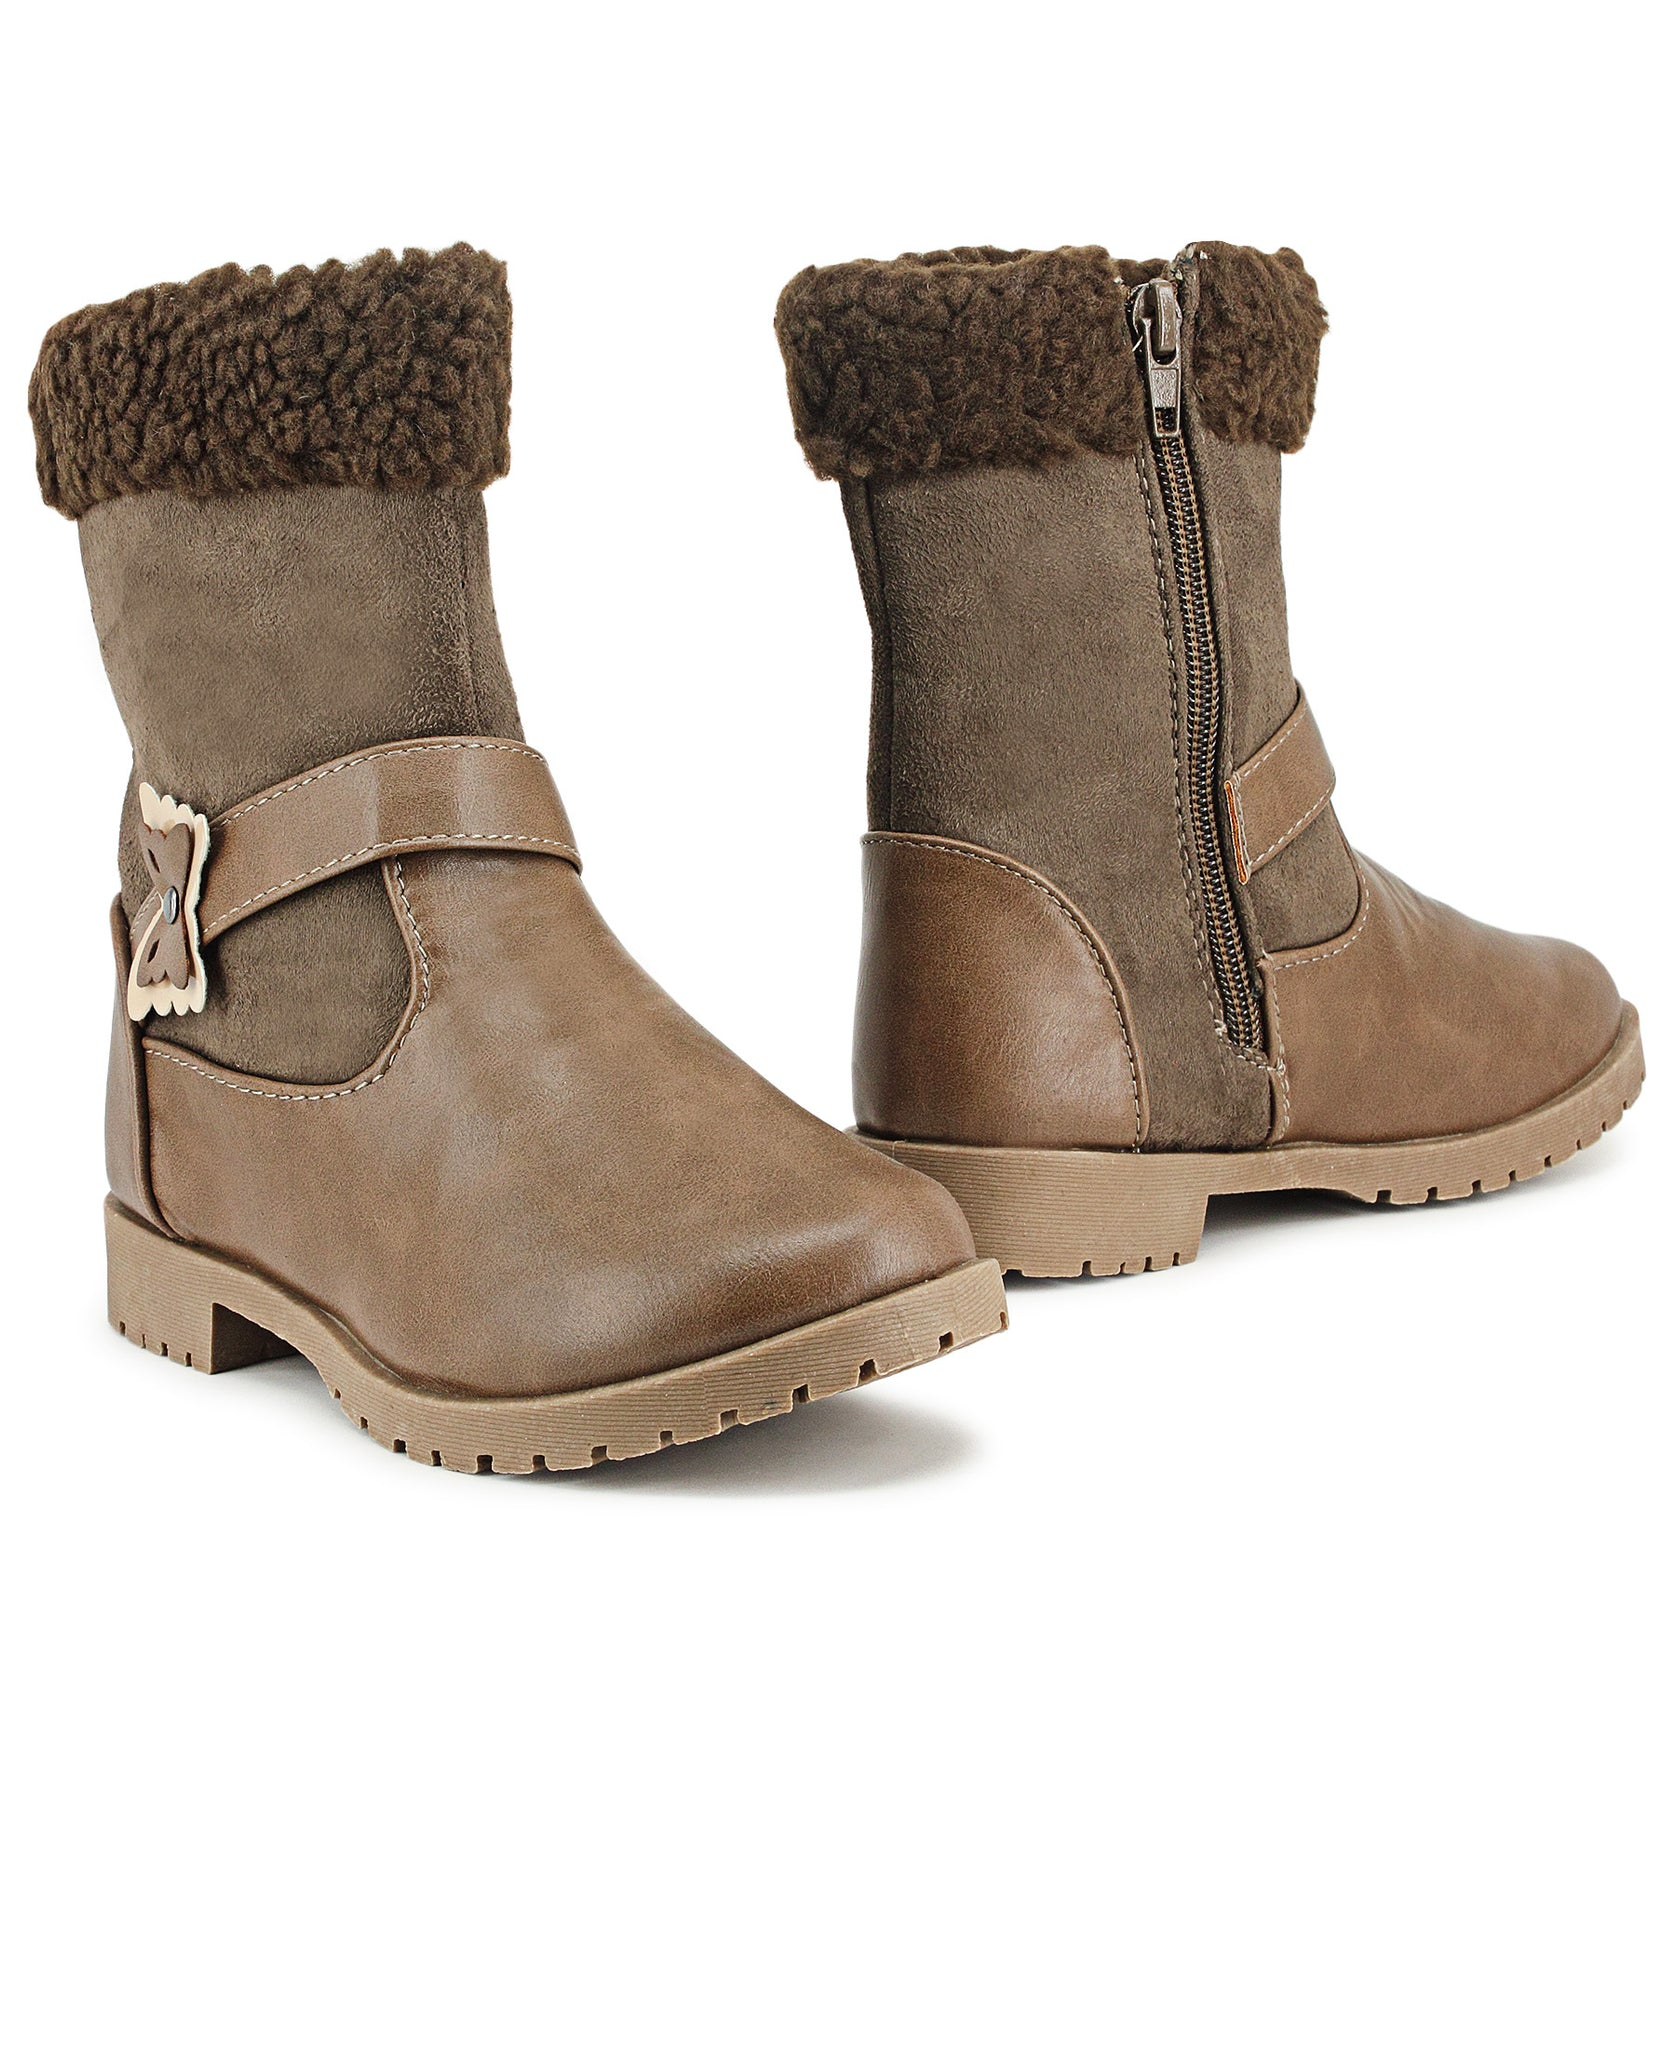 Girls Boots - Taupe